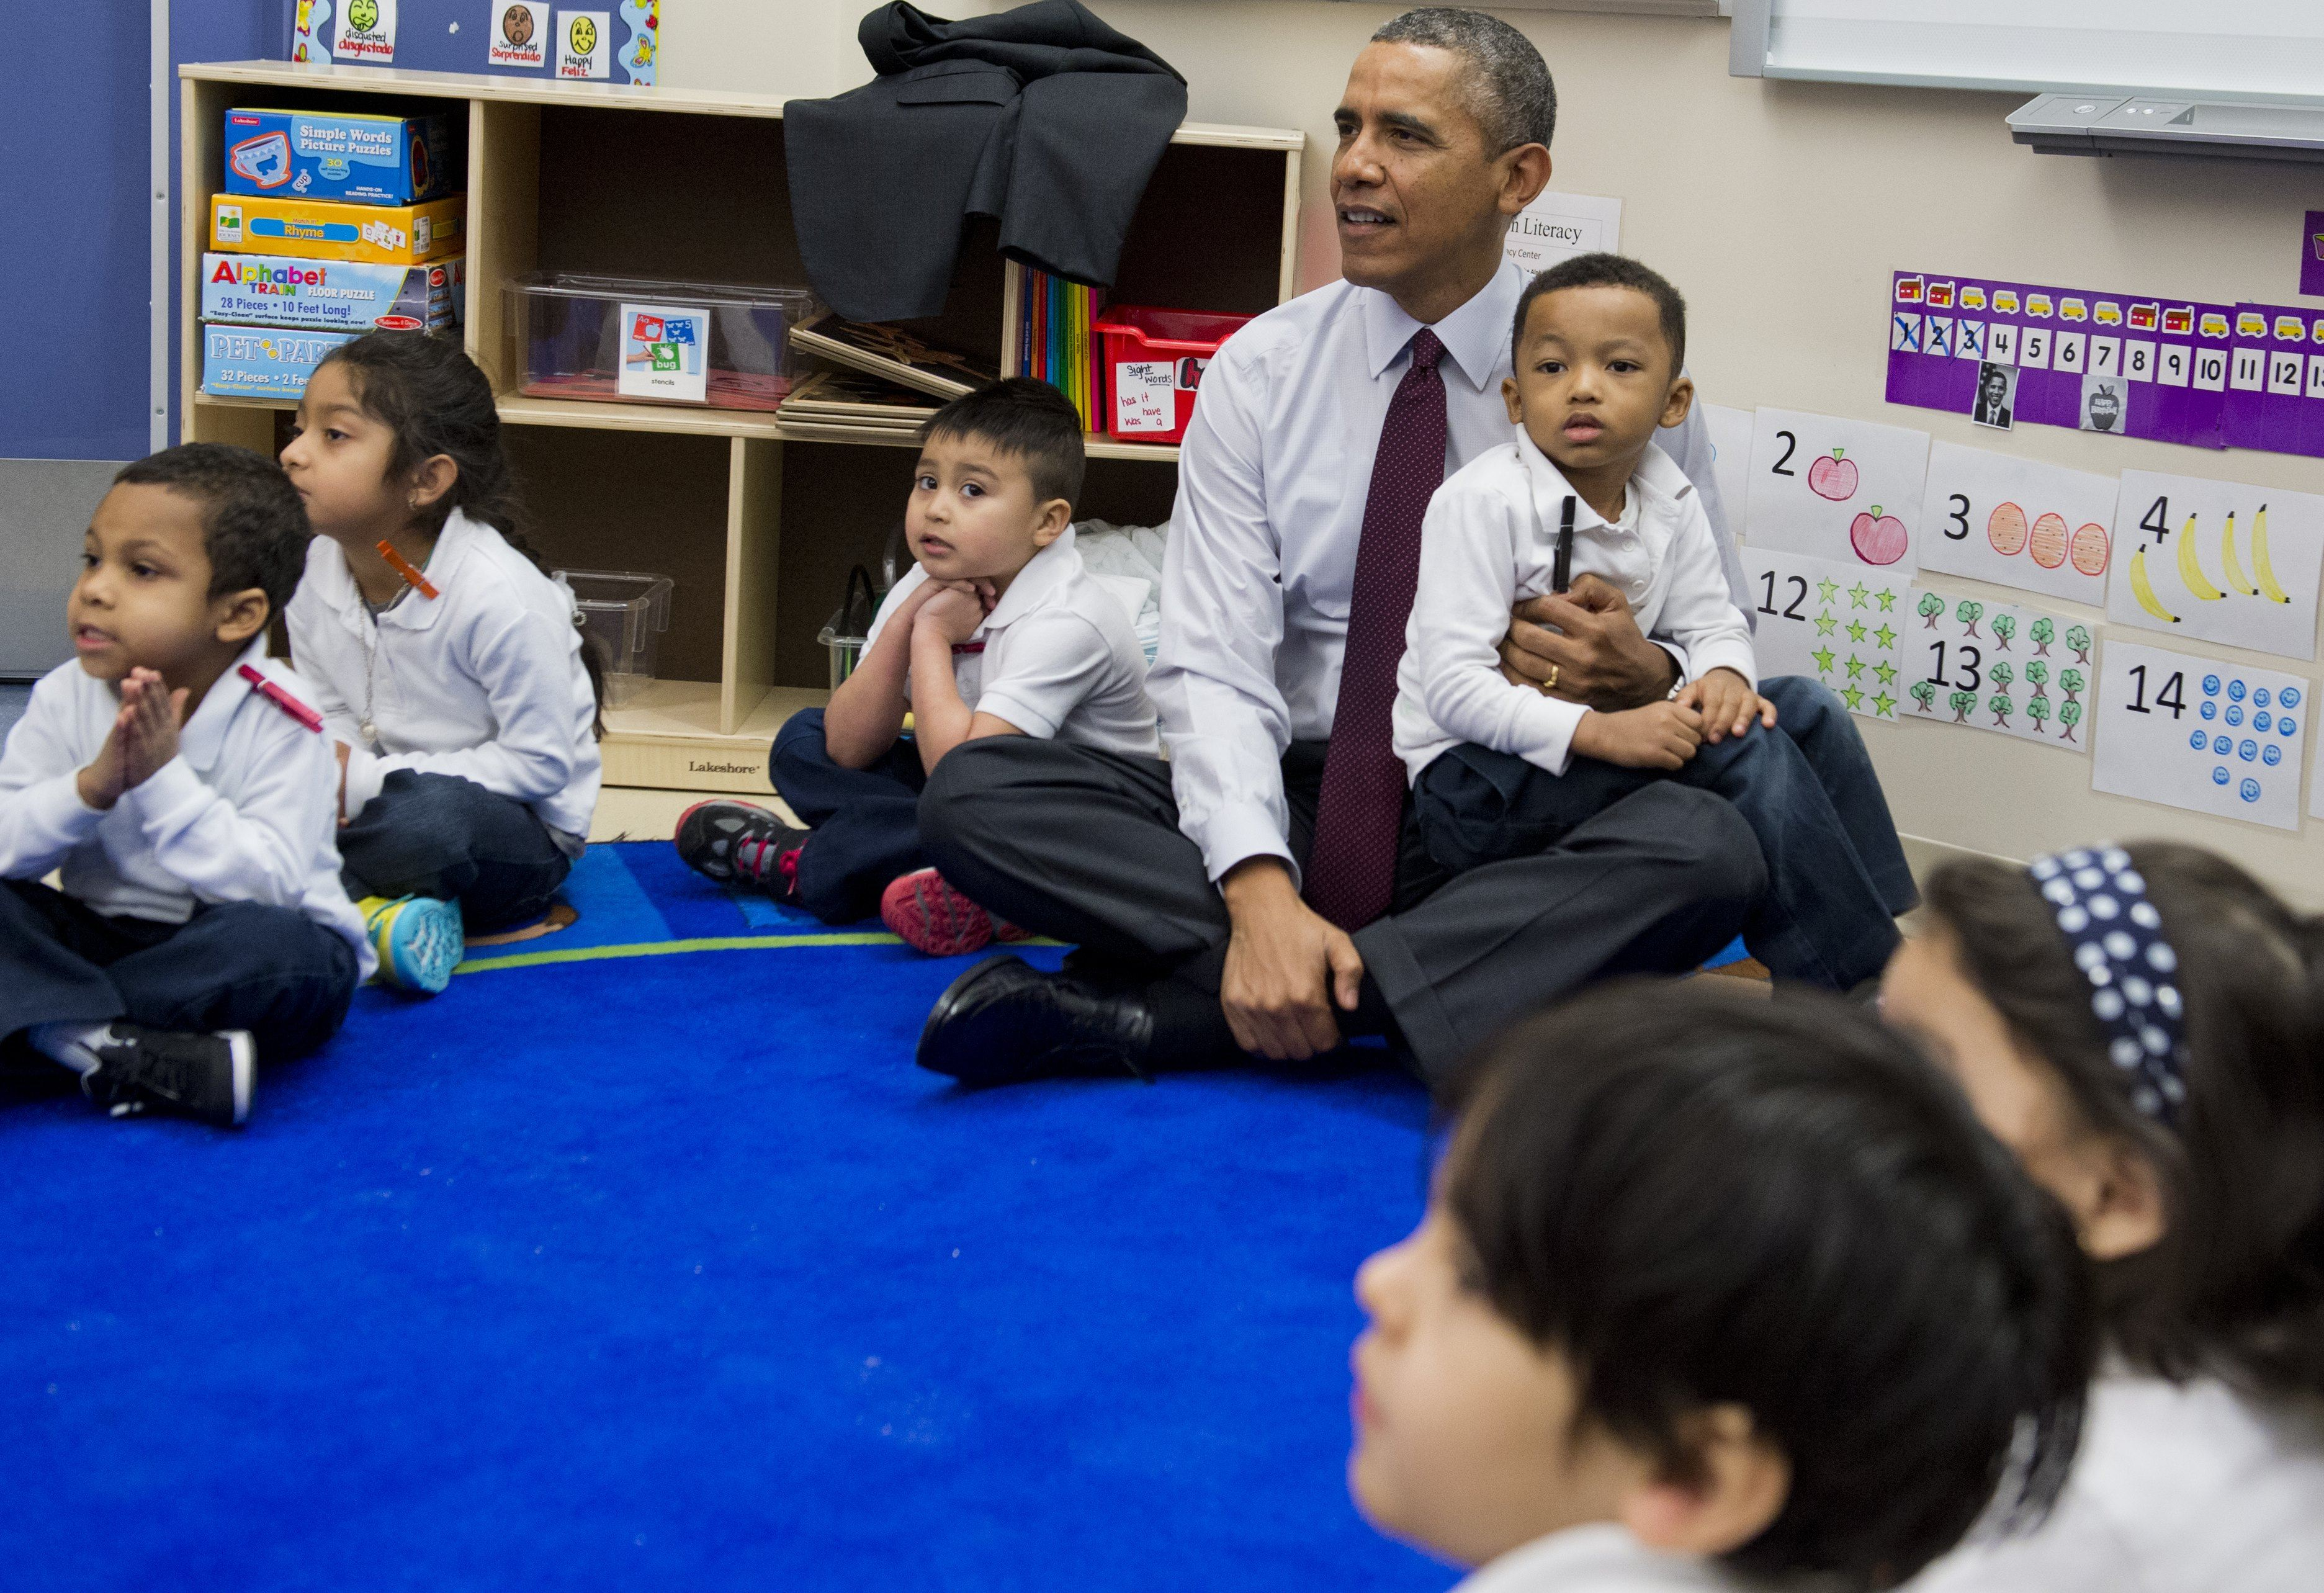 Barack Obama sits cross legged on the floor and holds a child in his lap